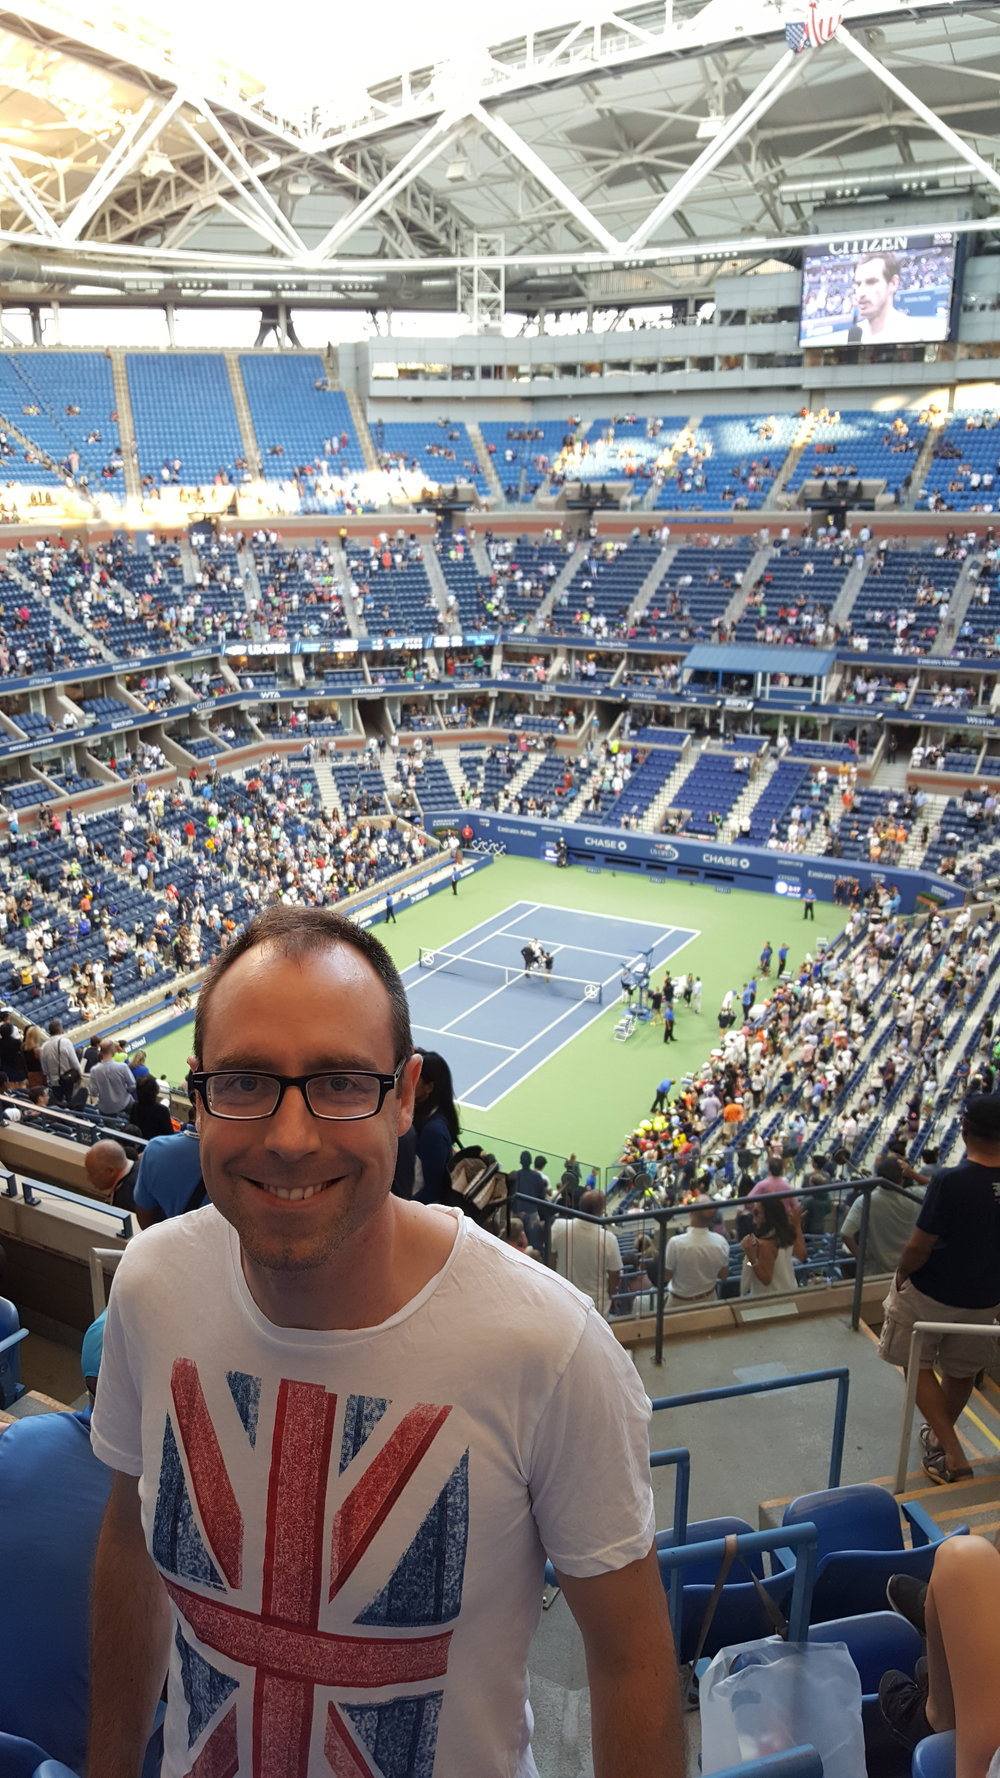 us-open-tennis.jpg